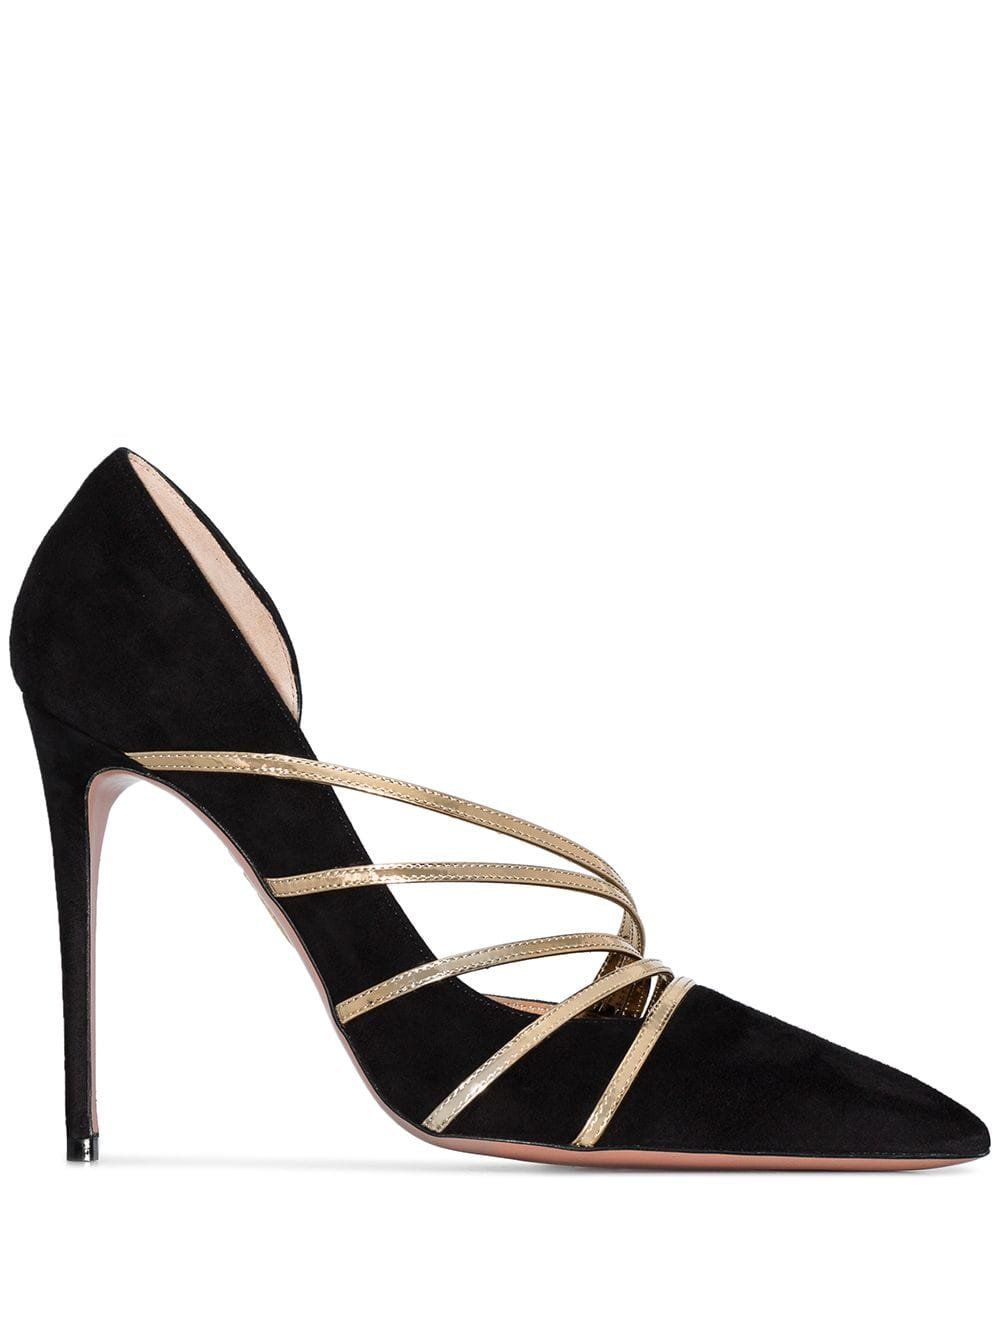 Black Aquazzura Minou Metallic-strap Pumps | Farfetch.com